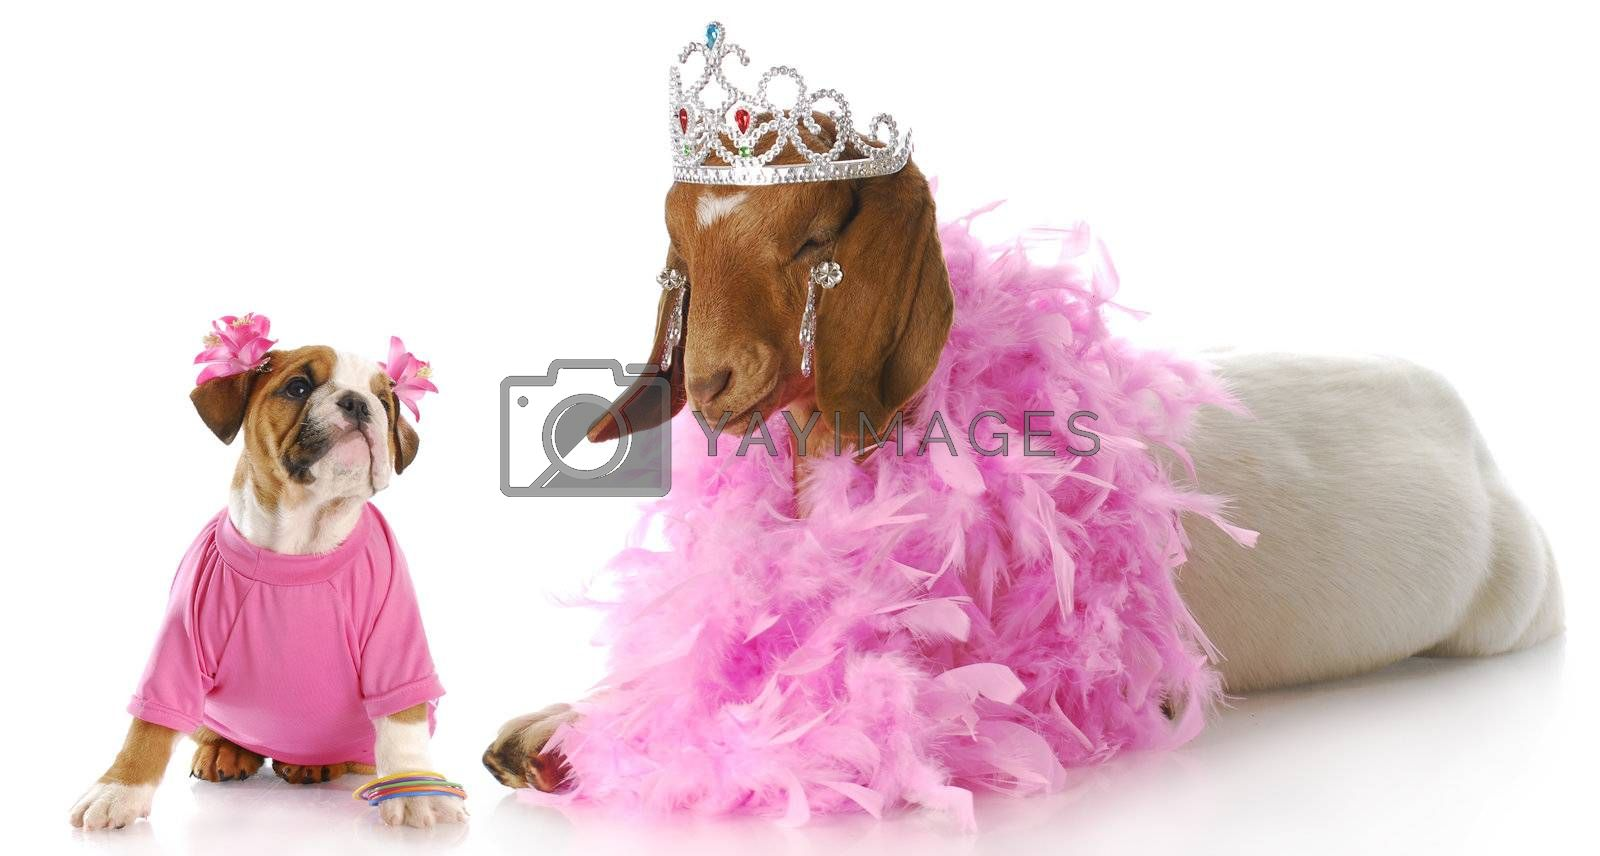 female bulldog puppy in pink looking up at goat dressed like a princess with reflection on white background